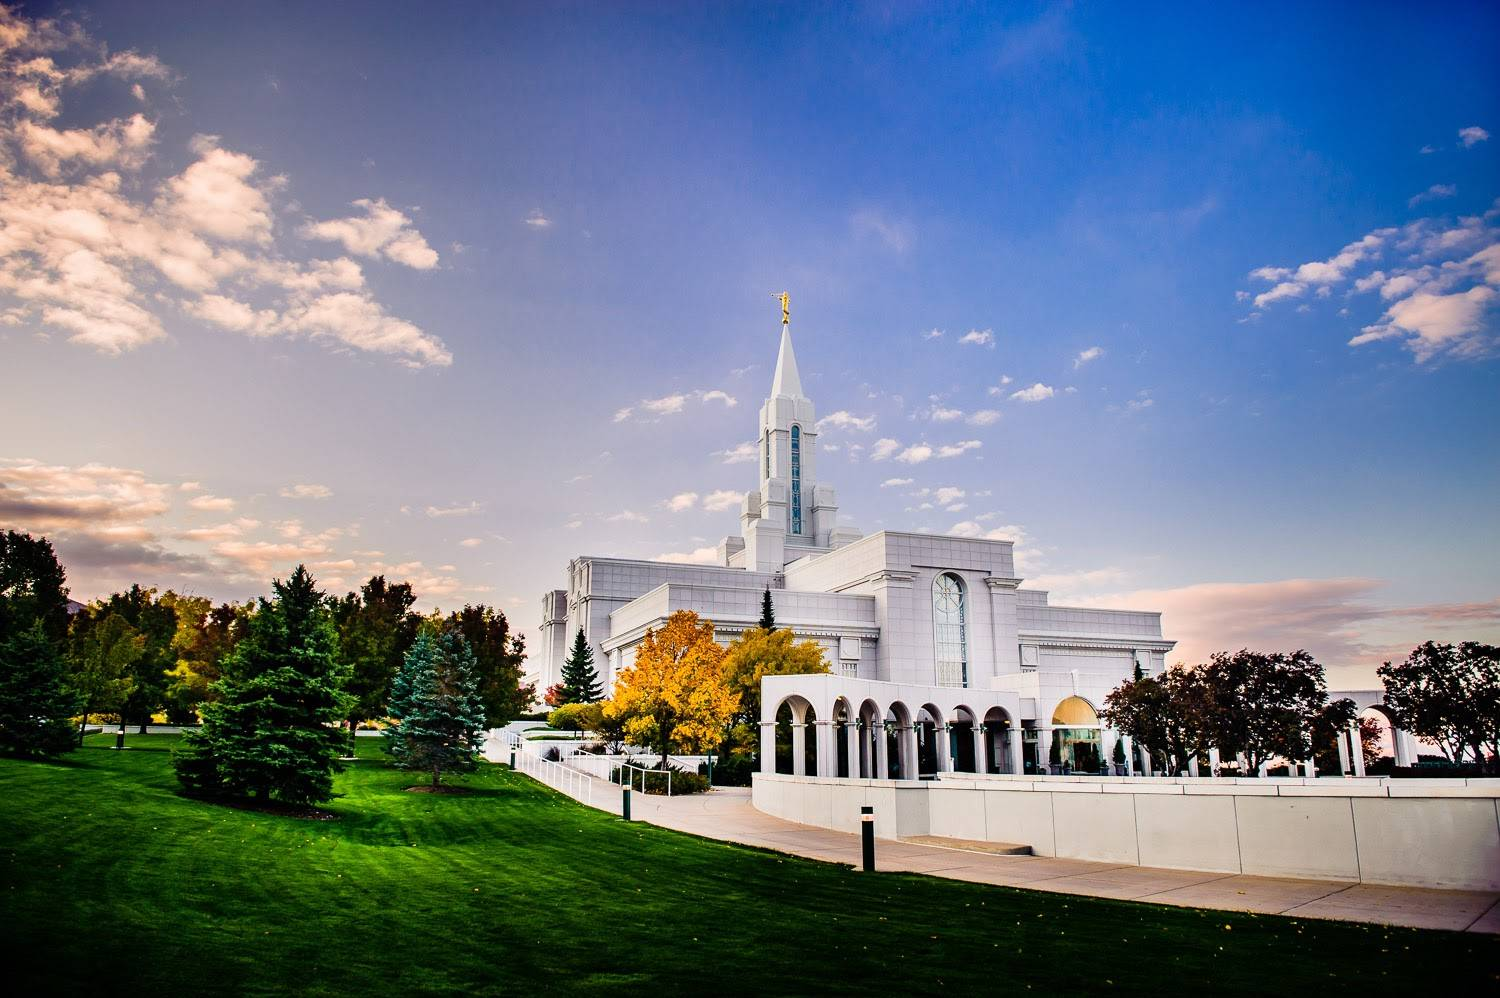 Photo of Bountiful Utah LDS Temple against clear skies and yellowing trees.